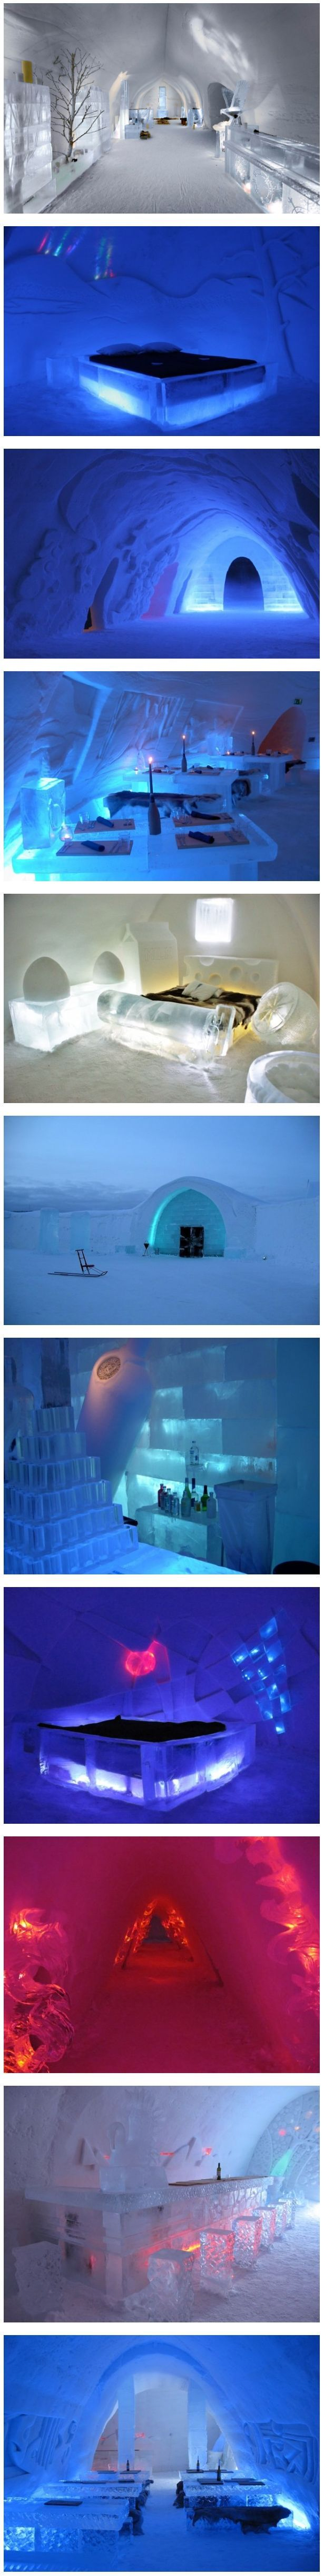 SnowHotel, Finland - looks like a great place to go have a chilled vodka...Nina you in??